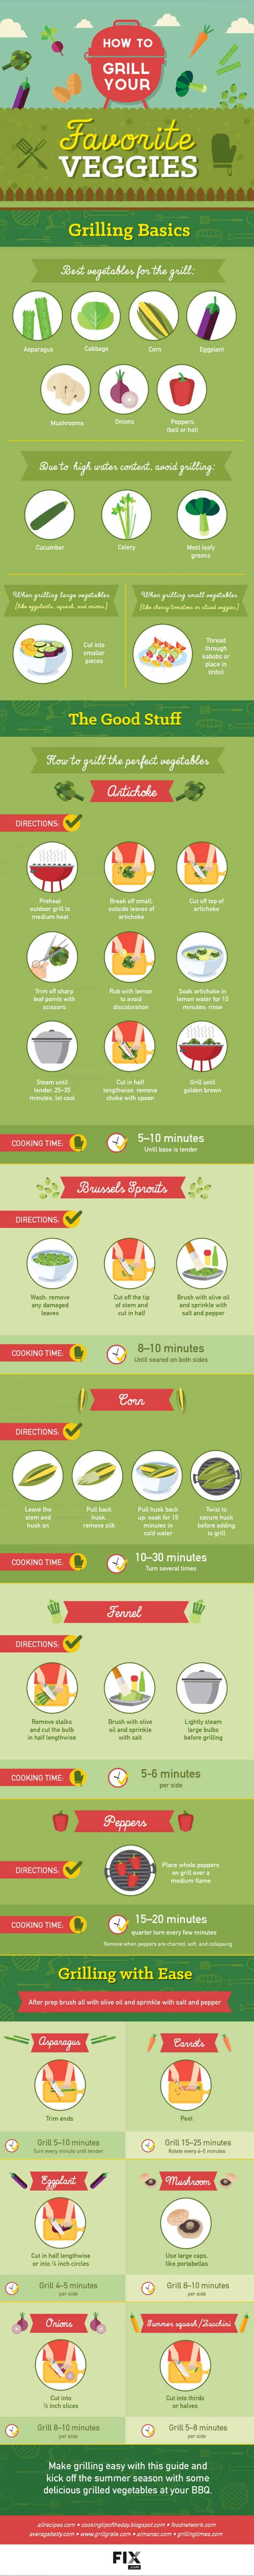 shows the best way to grill different types of vegetables